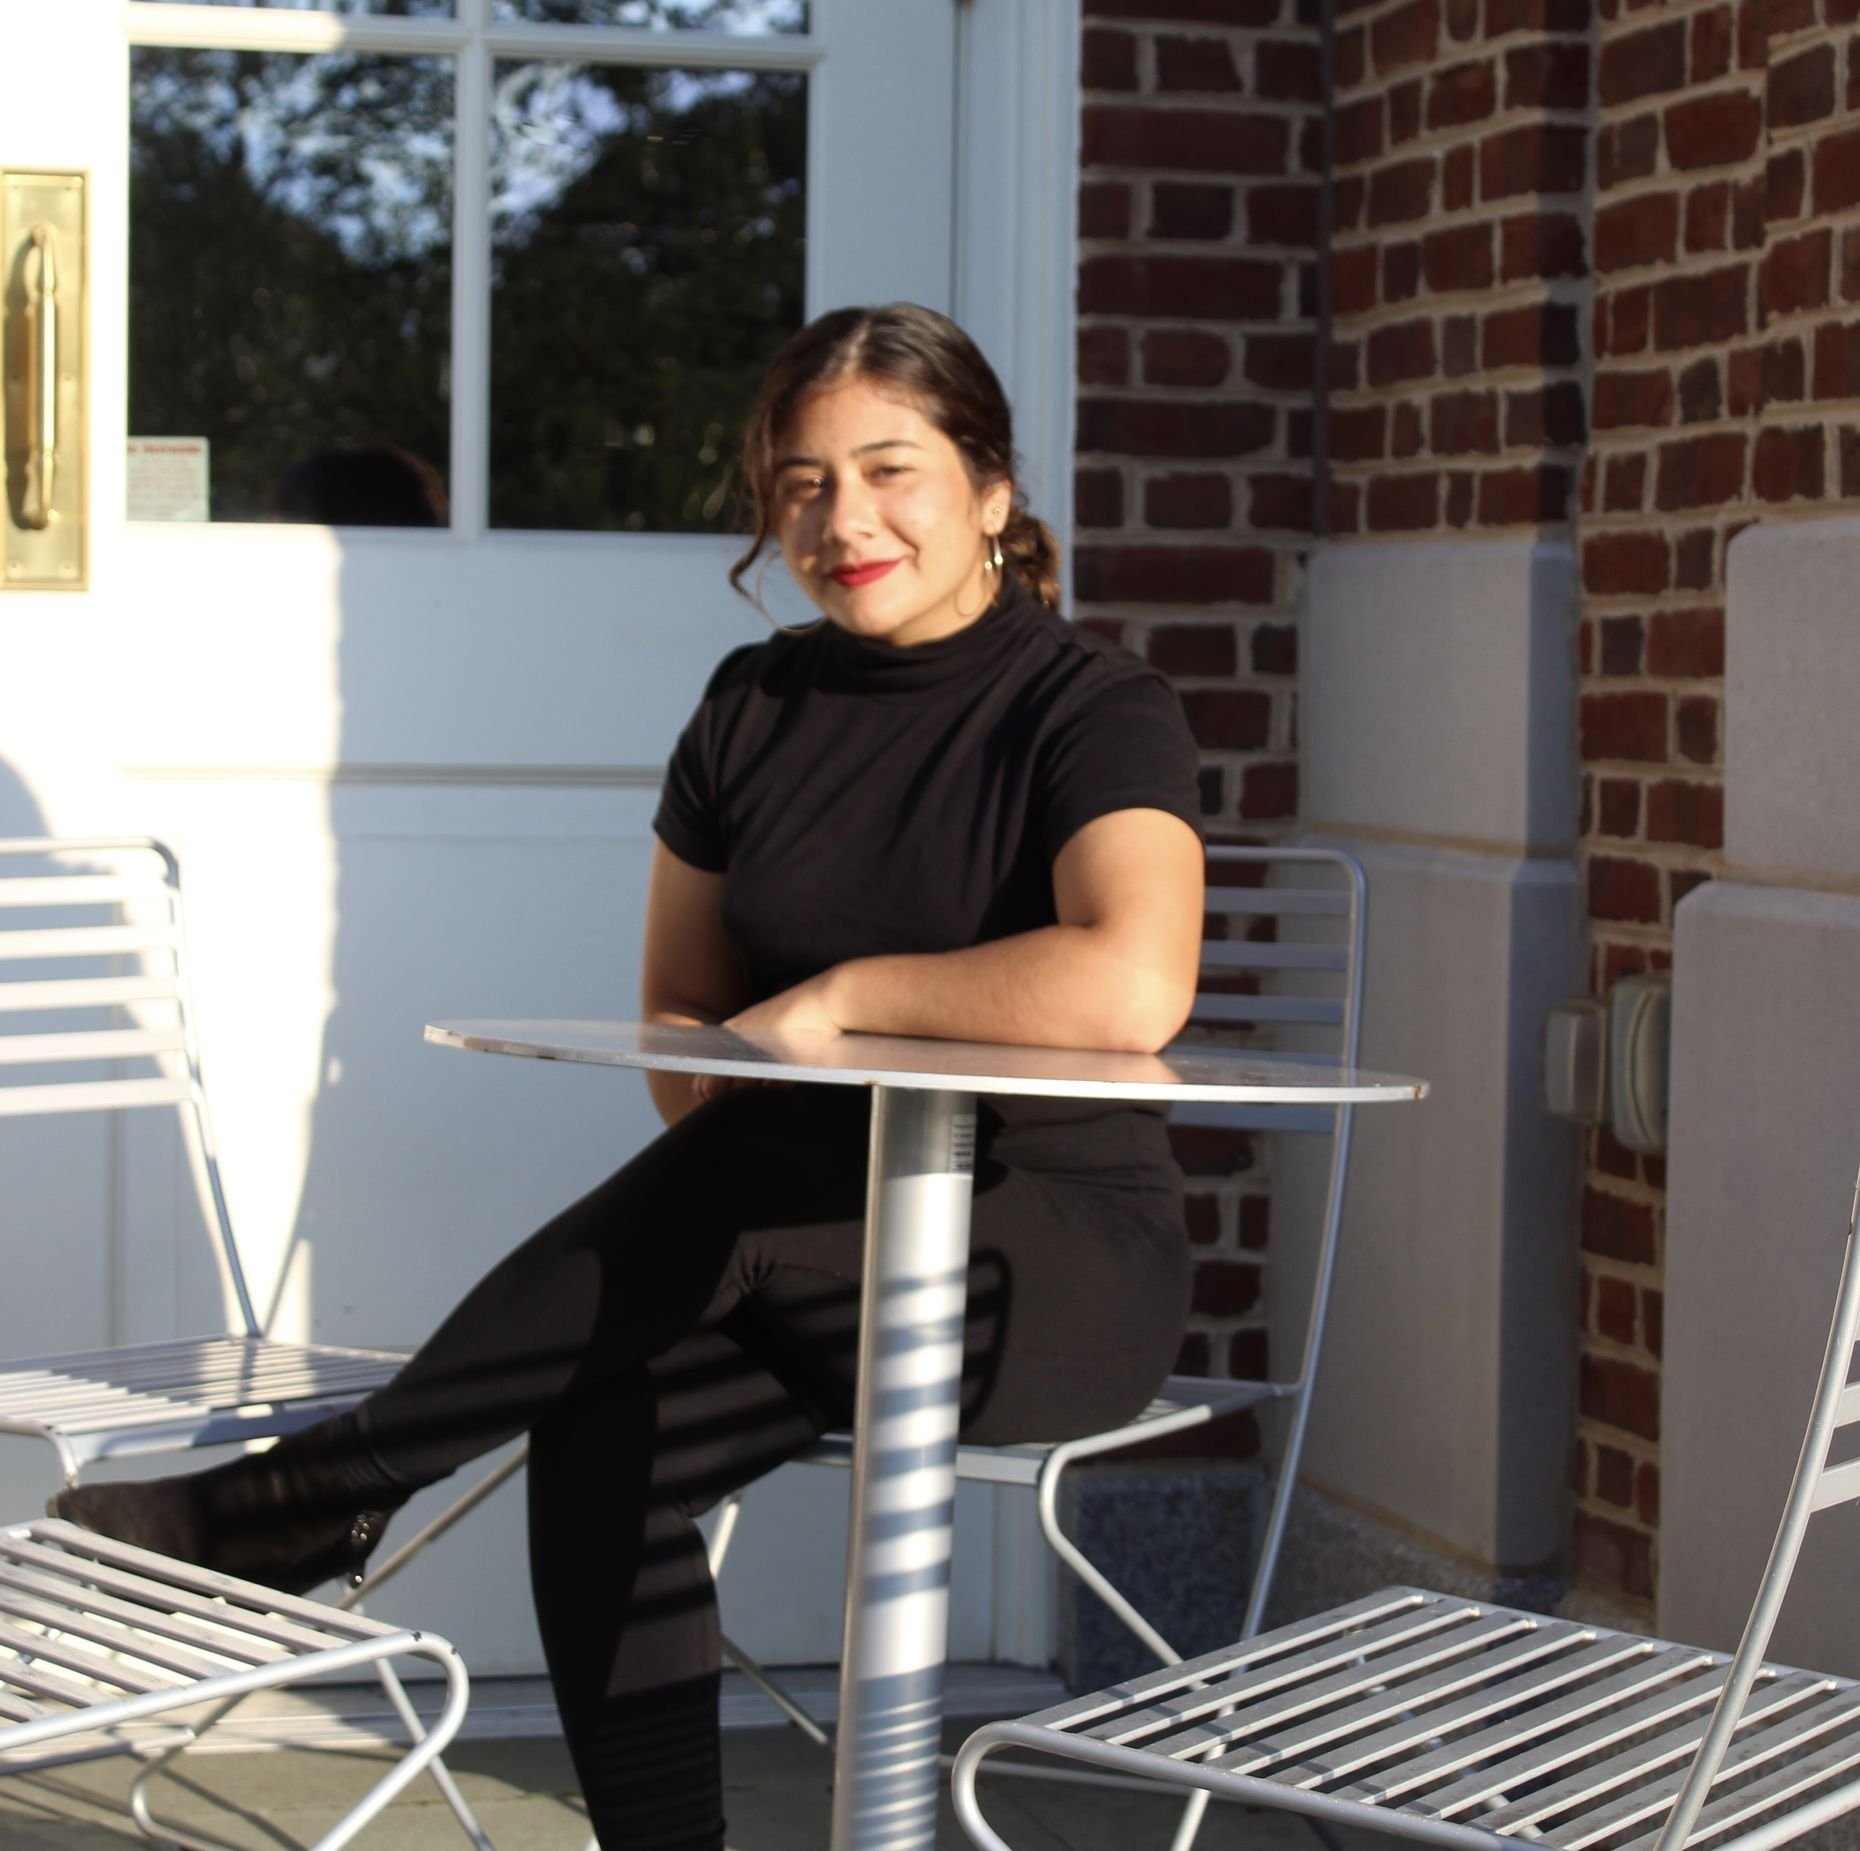 A photo of Marcy sitting at a table and smiling into the camera.